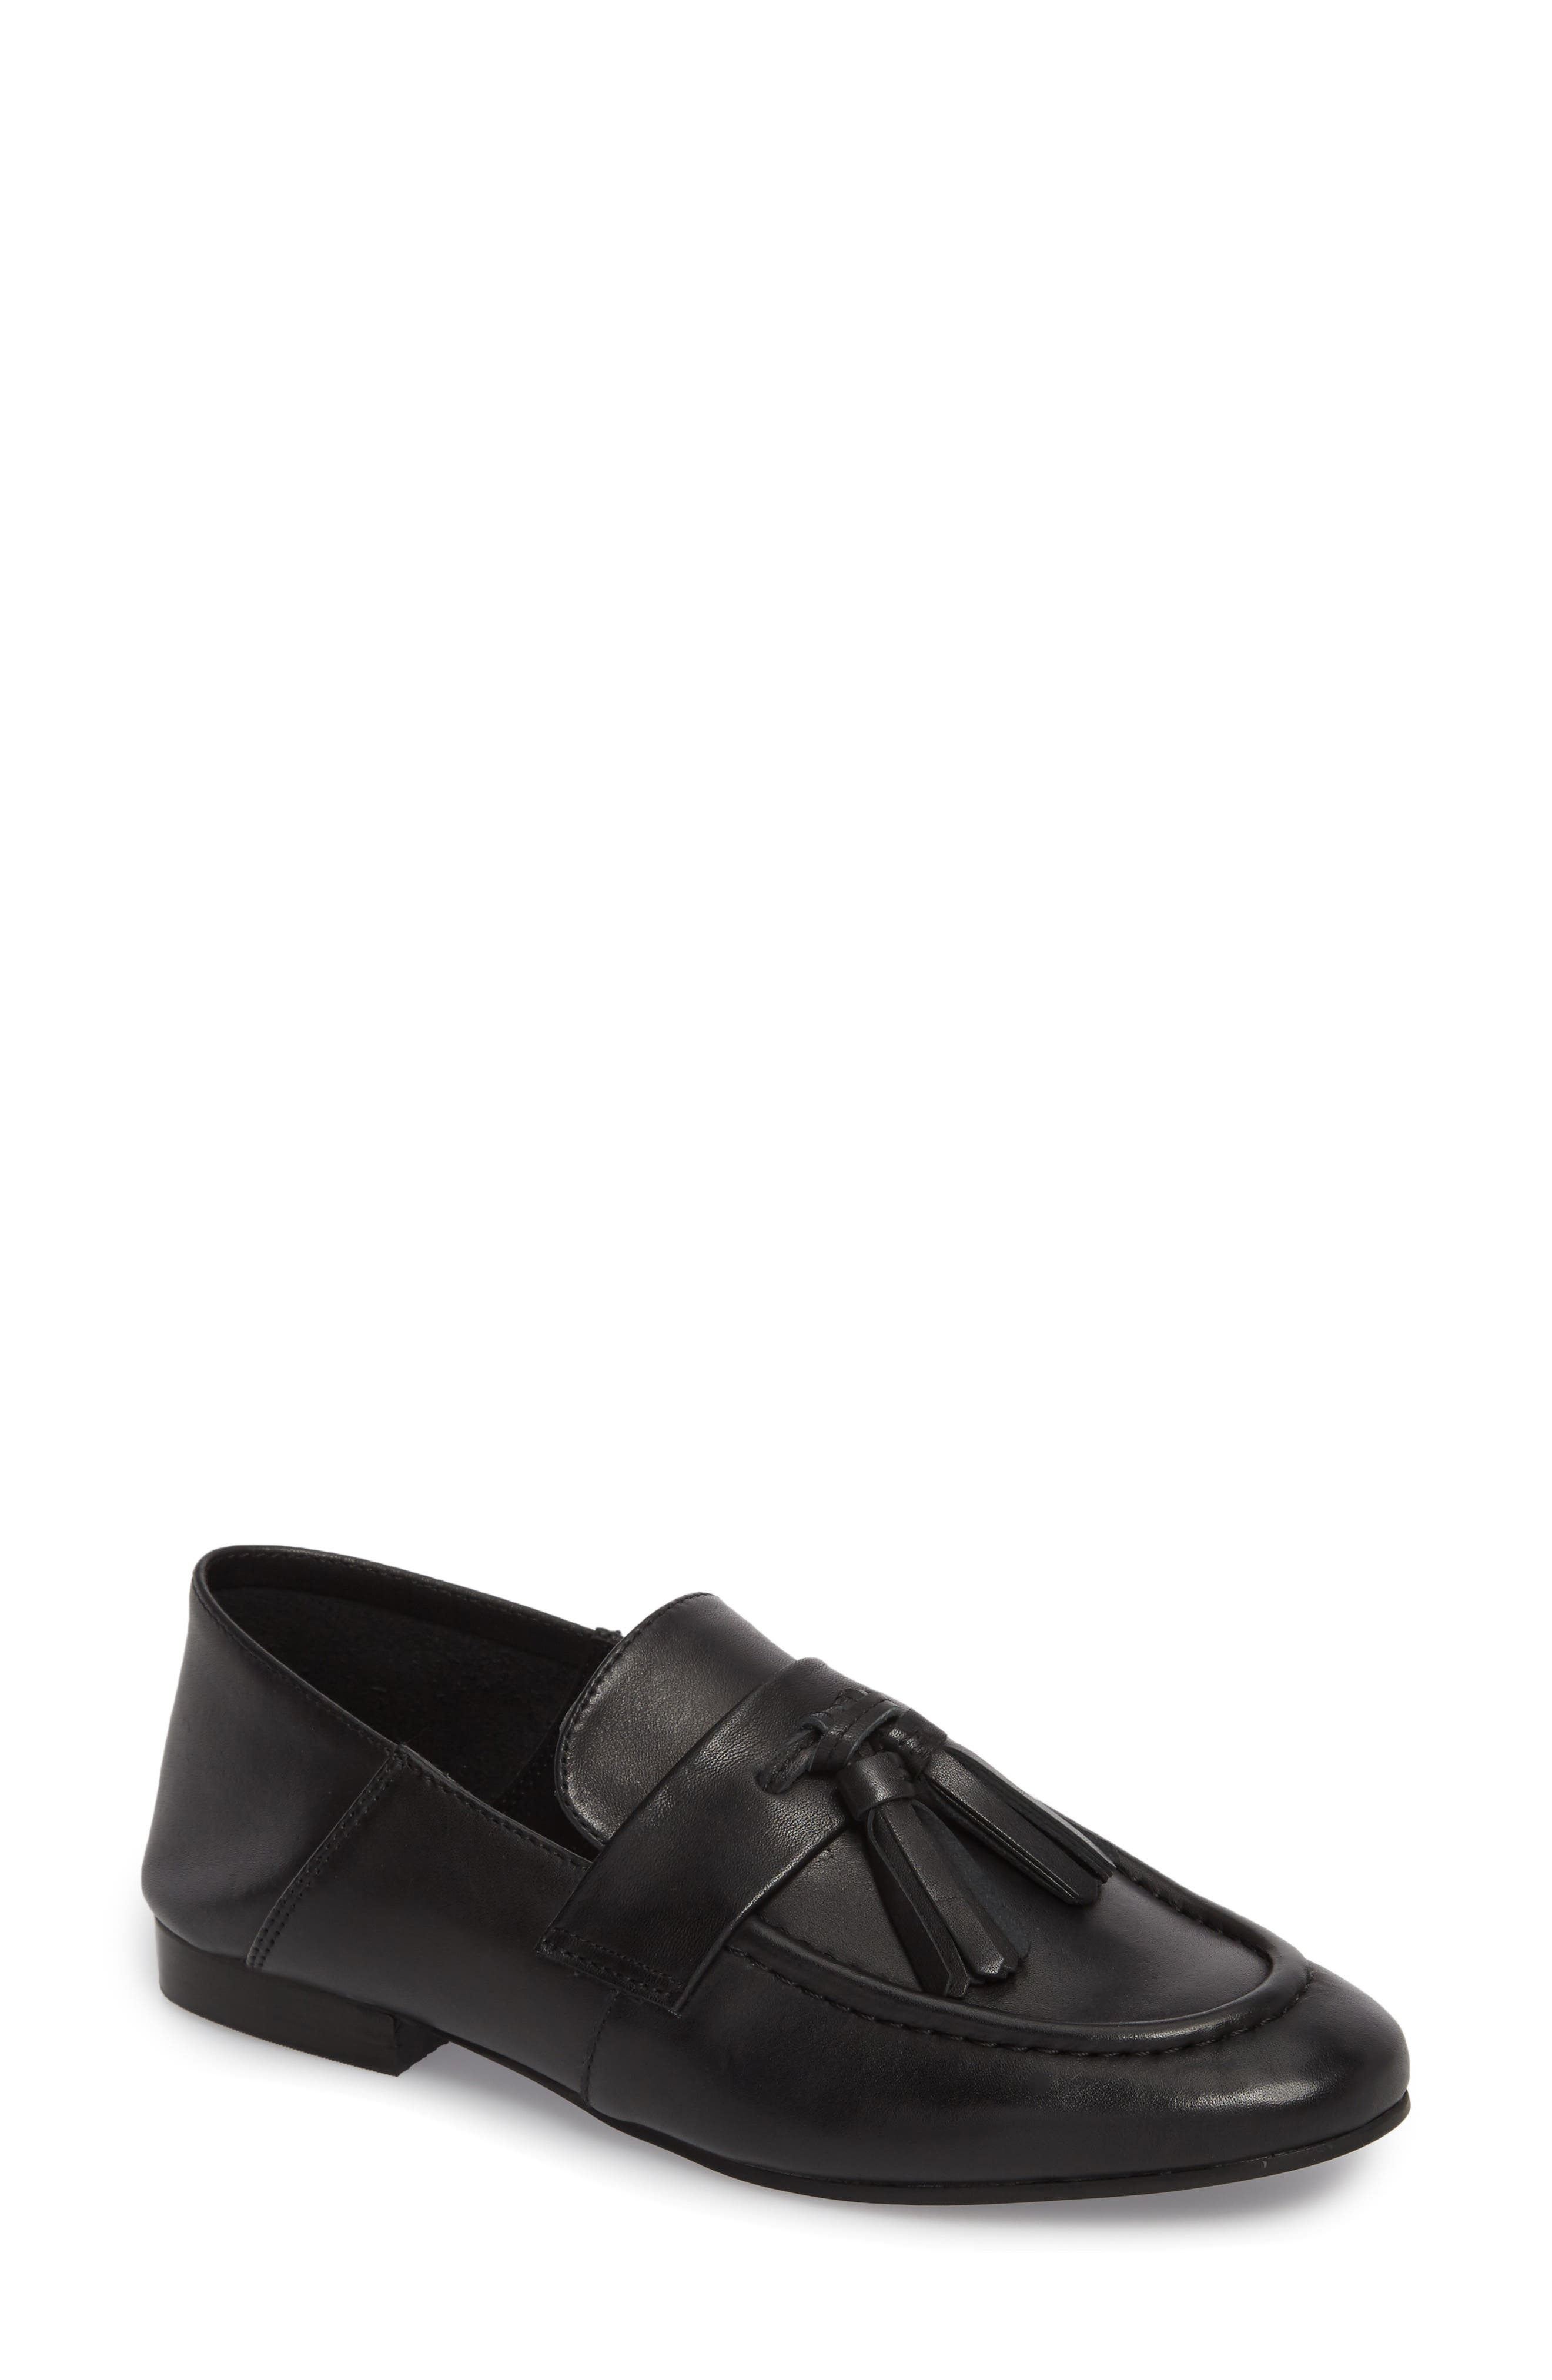 Beck Convertible Tasseled Loafer,                         Main,                         color, Black Leather